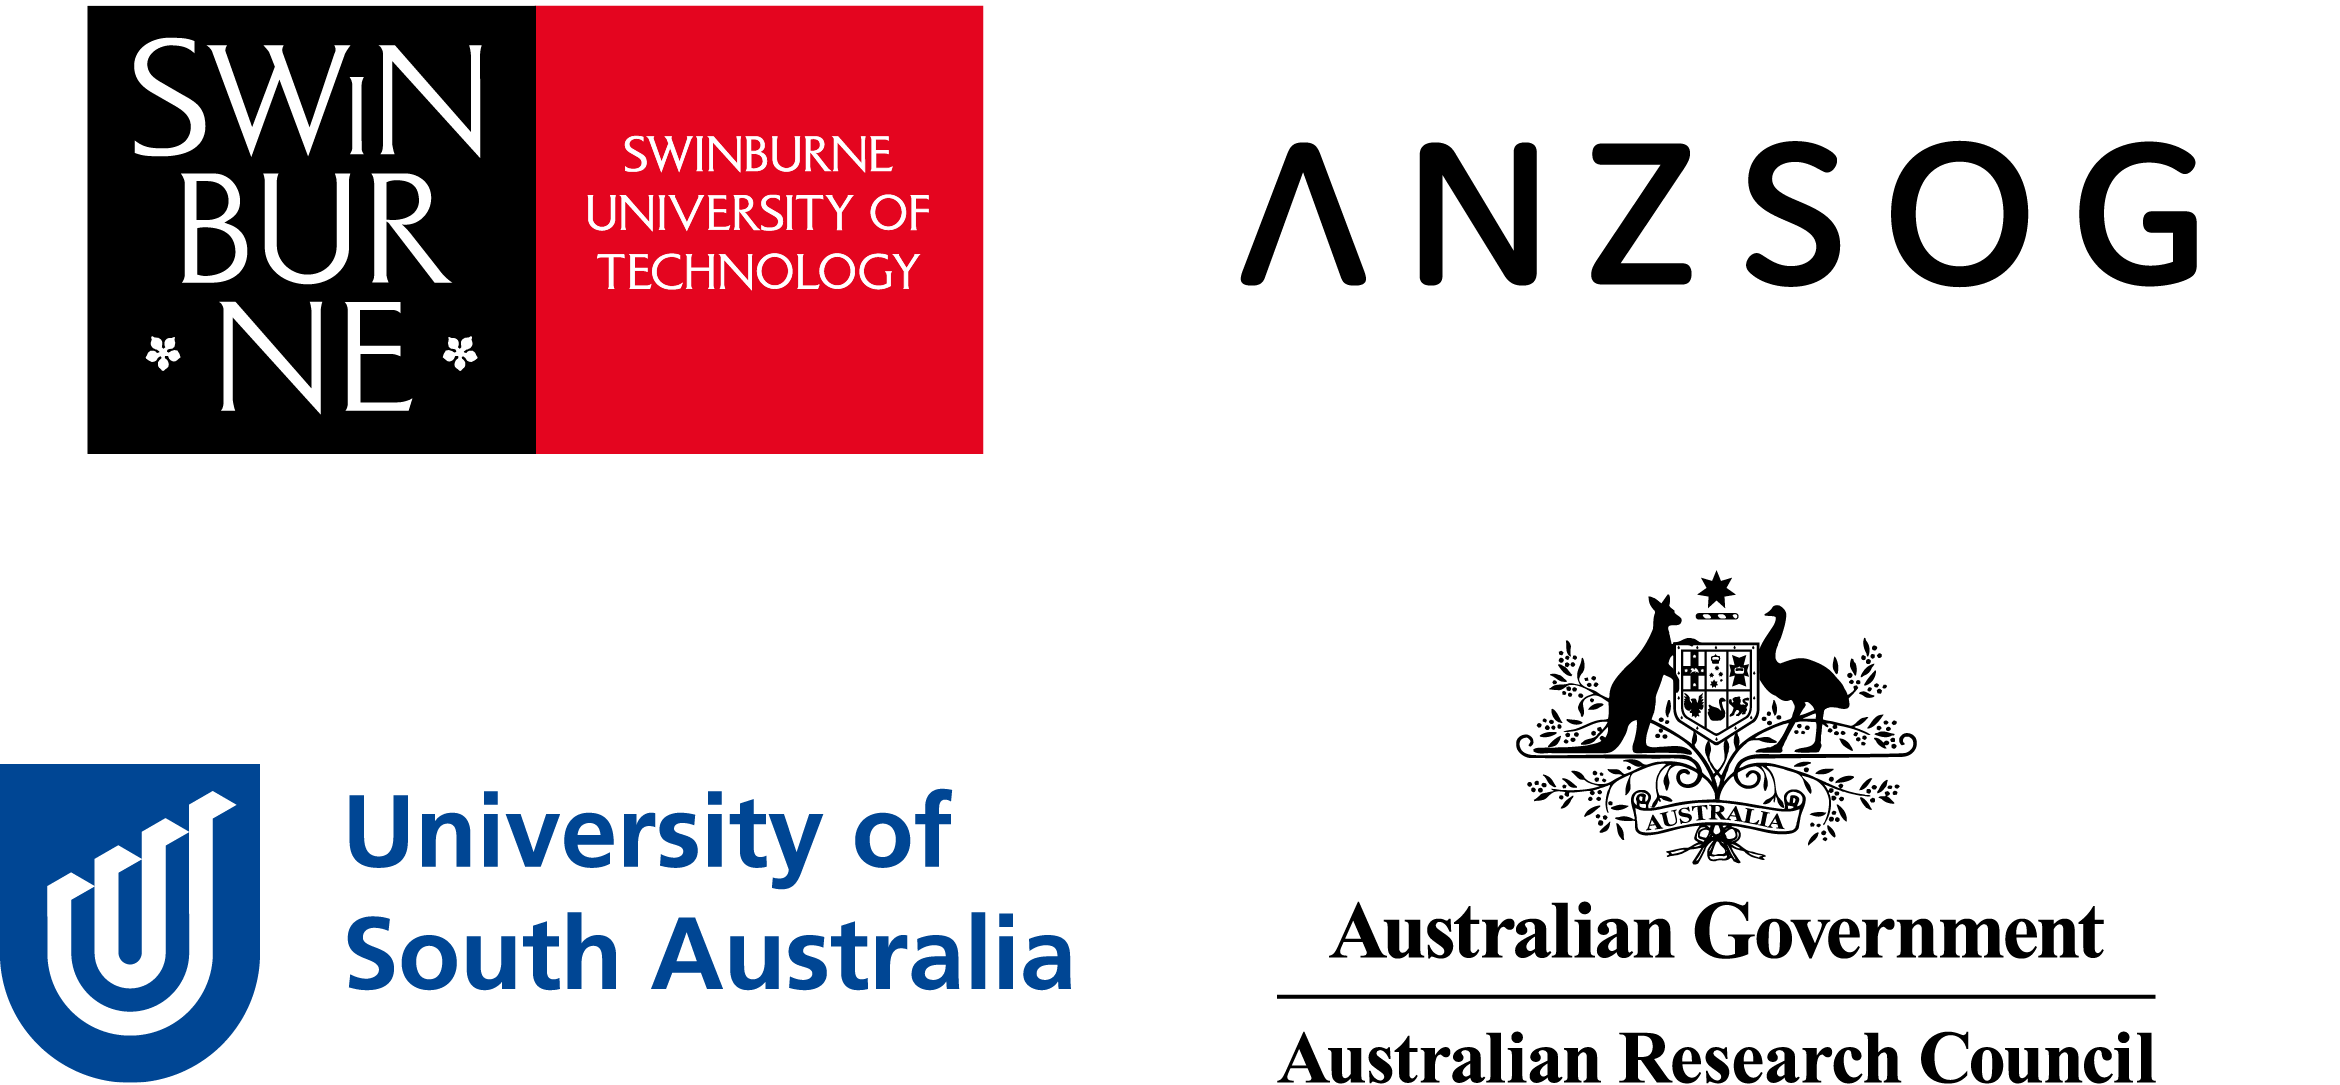 Swinburne ANSOG UniSA ARC Logos